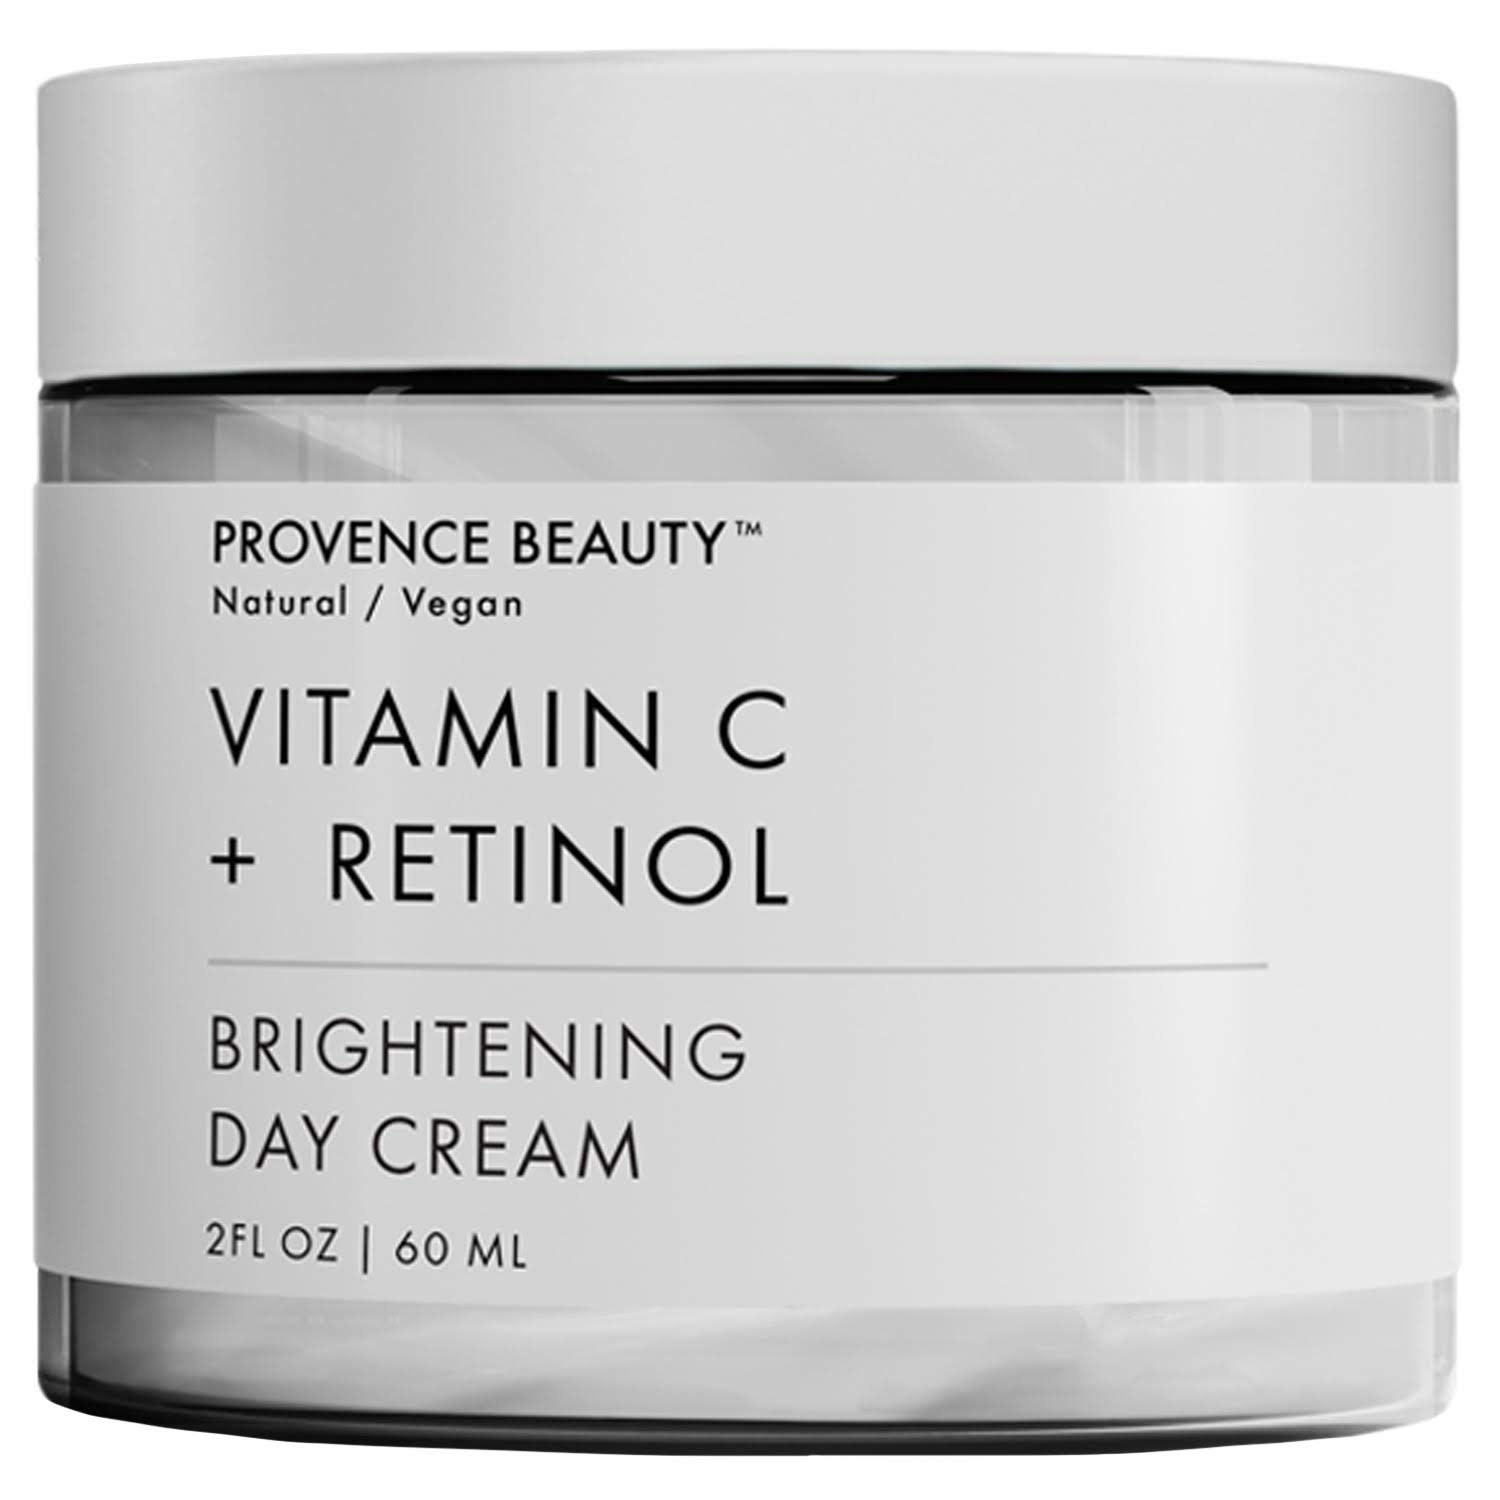 Vitamin C and Retinol Day Cream - Hydrating Face and Neck Moisturizer for Anti Aging, Wrinkle, Acne, Firming and Dry Skin - Organic Facial Cream for Women, Men and all Skin Types - 2 Fl Oz